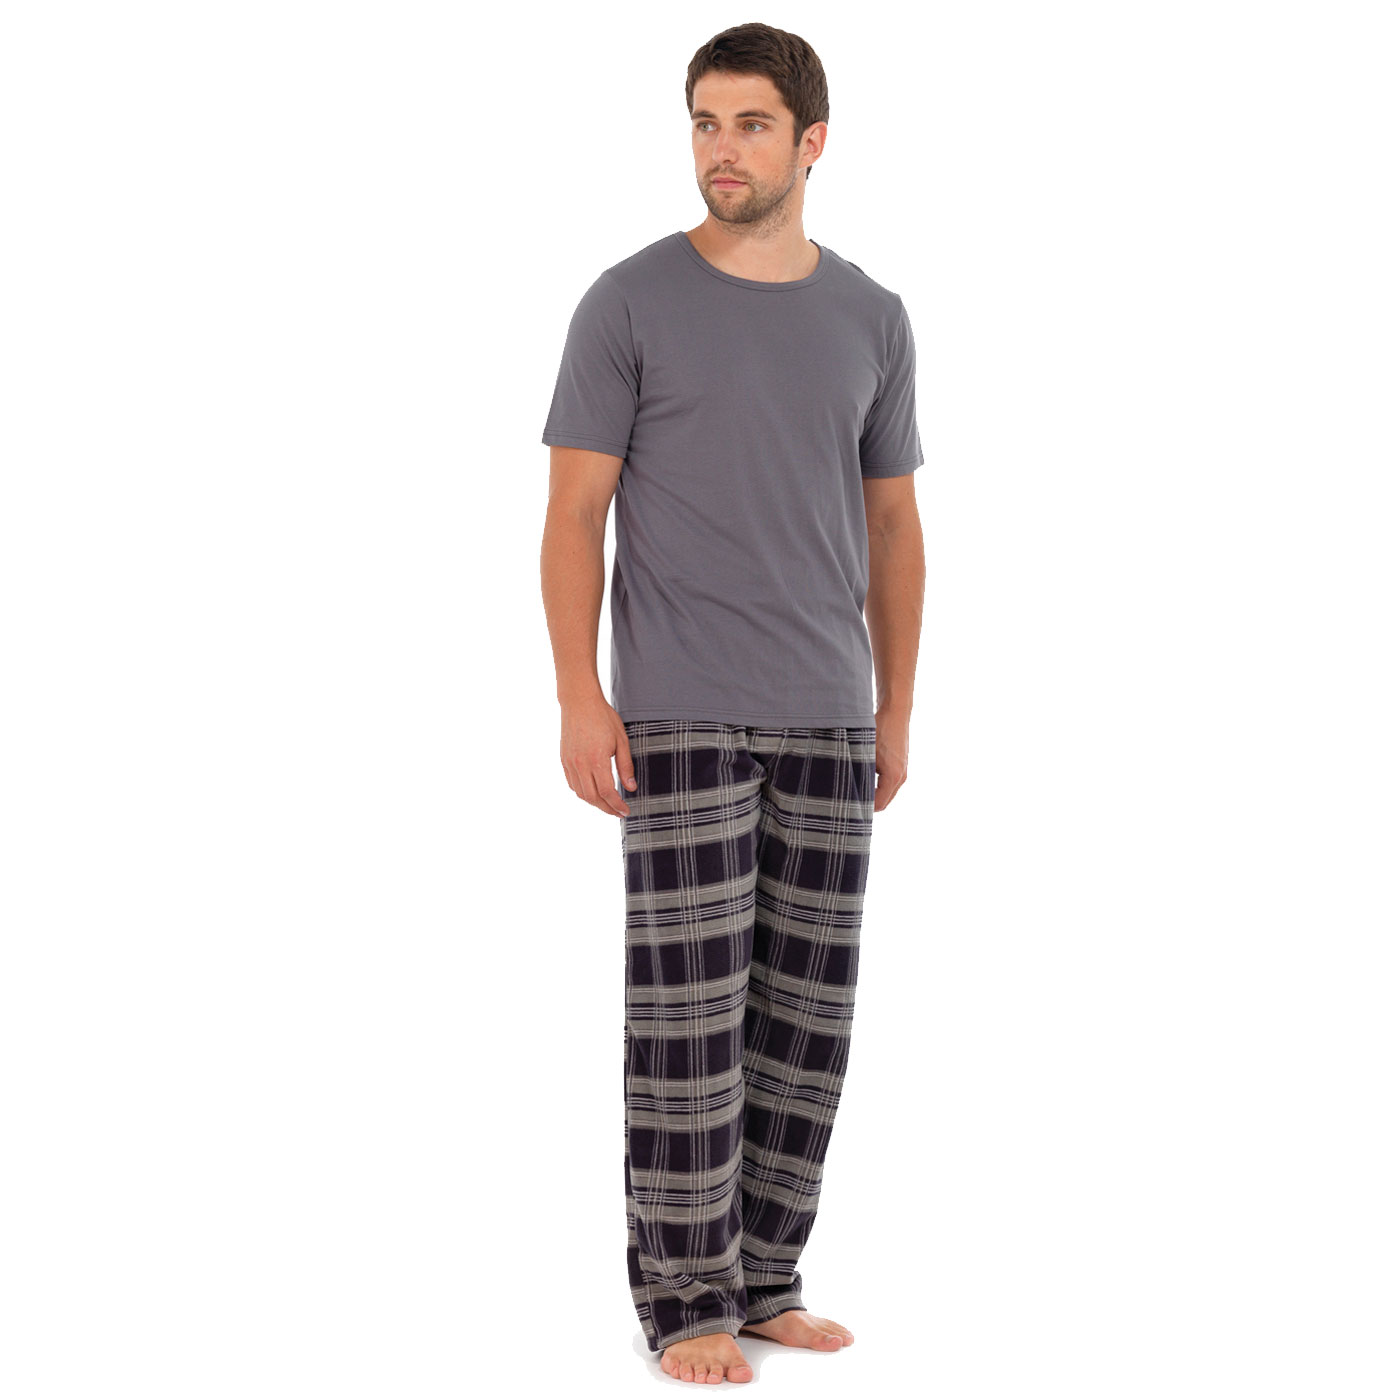 Embrace a luxurious feel with men's pyjamas and nightwear. For laidback hours, our loungewear and robes have you covered. Next day delivery and free returns available.